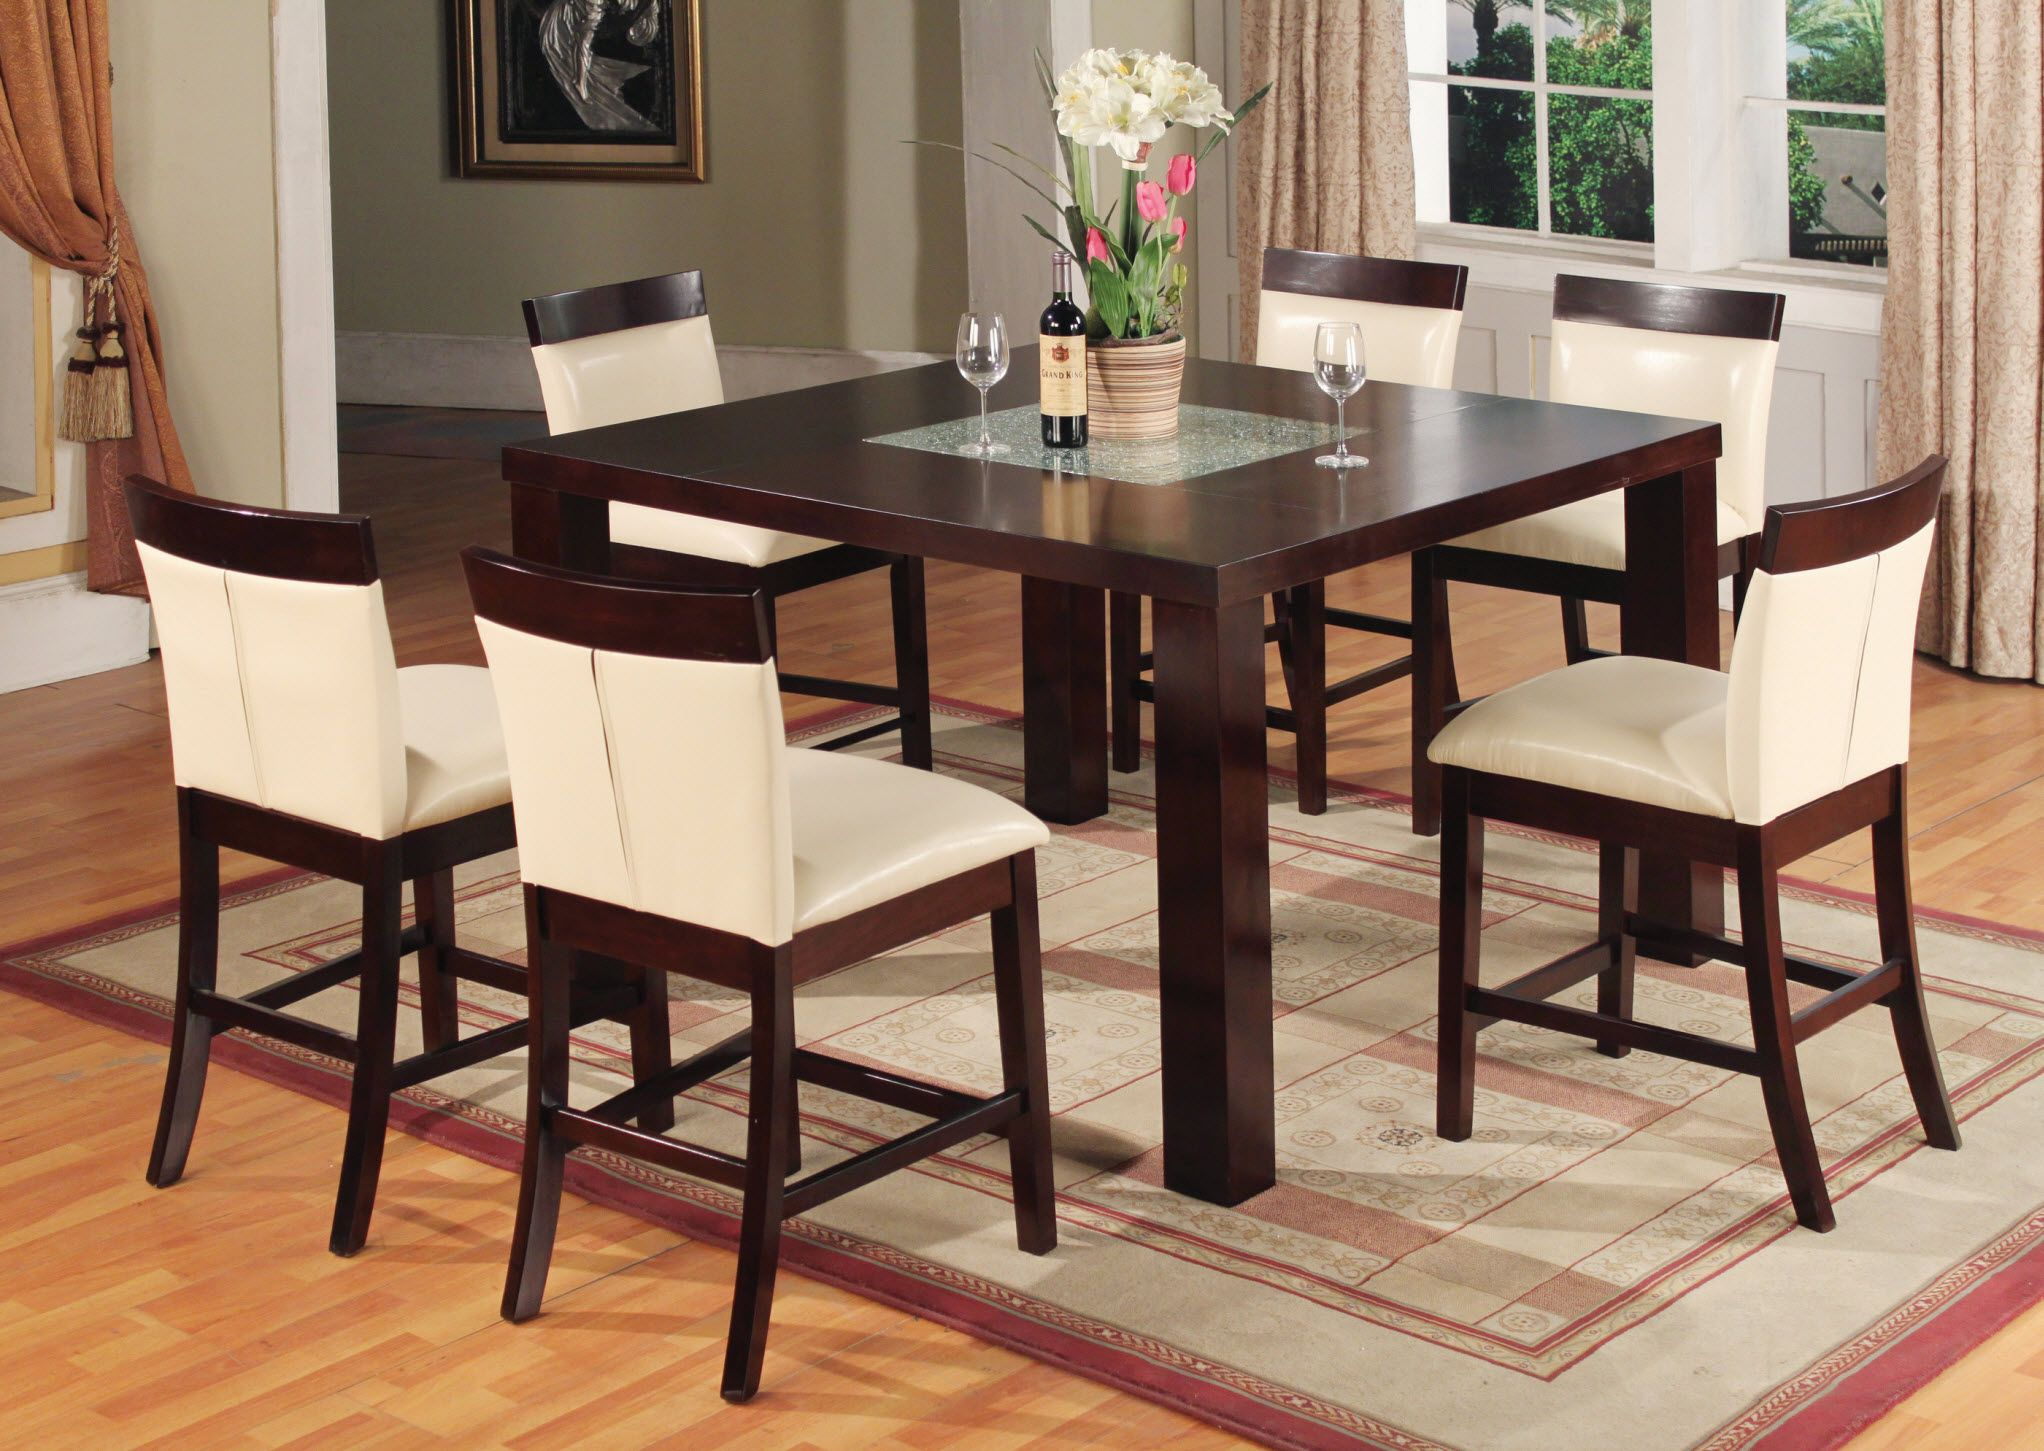 Bar Height Dining Table Set. Pub Tables Bar Height Dining Table ...